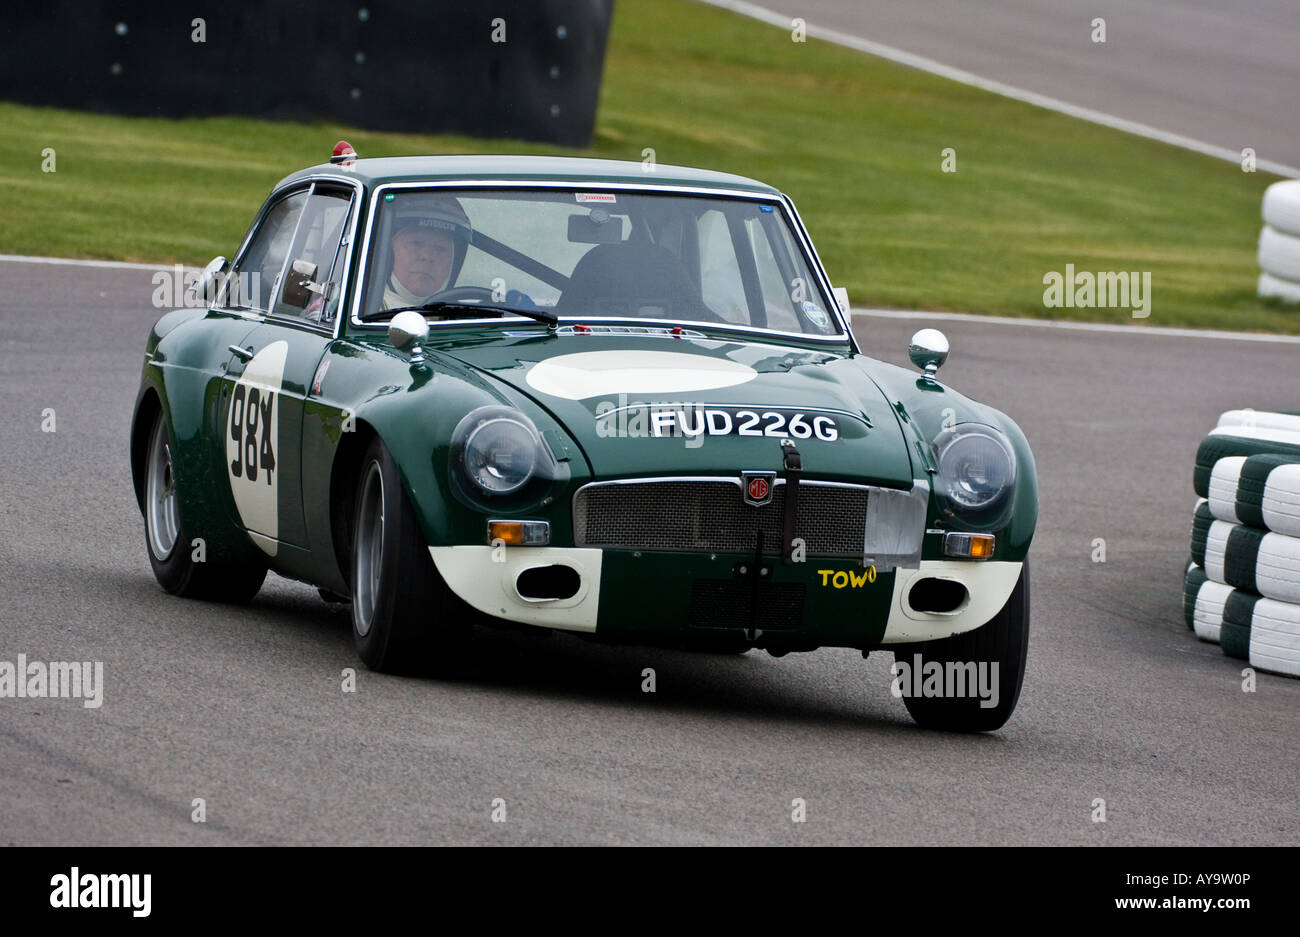 1969 MGC GT Sebring driven by Barrie Williams at the GRRC Sprint at Goodwood, Sussex, UK. Stock Photo